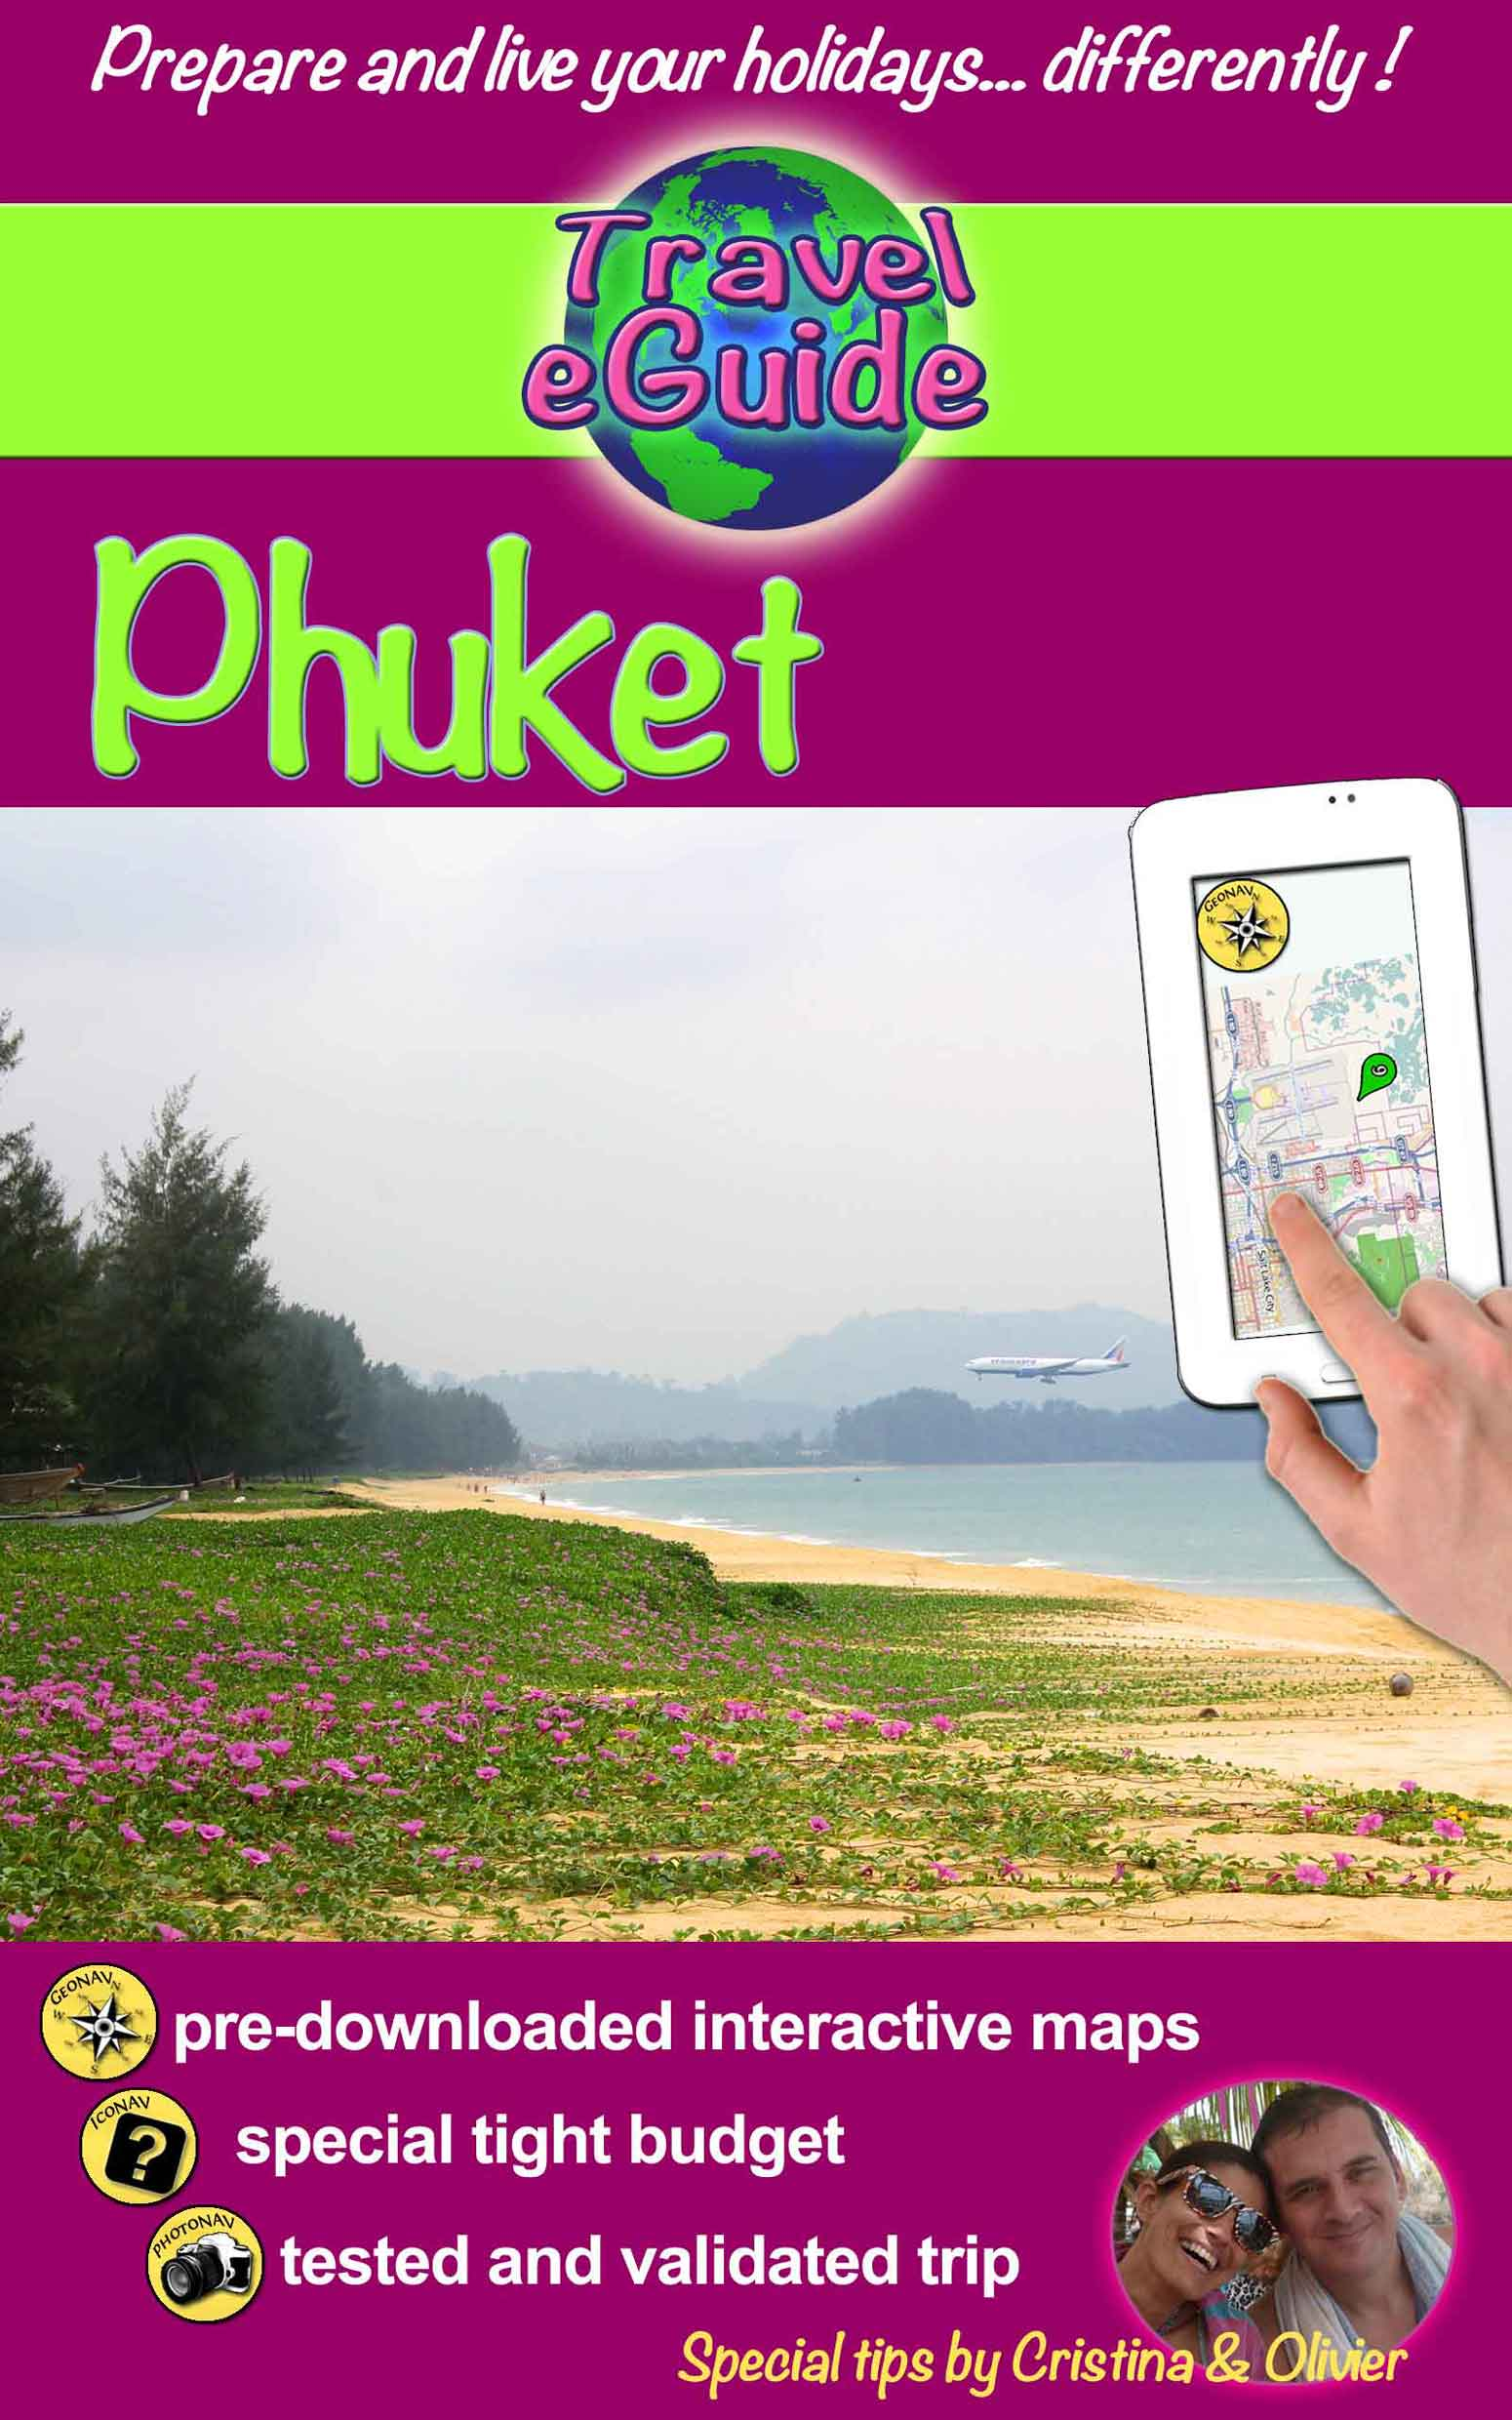 Travel eGuide Phuket and its region - Cristina Rebiere & Olivier Rebiere